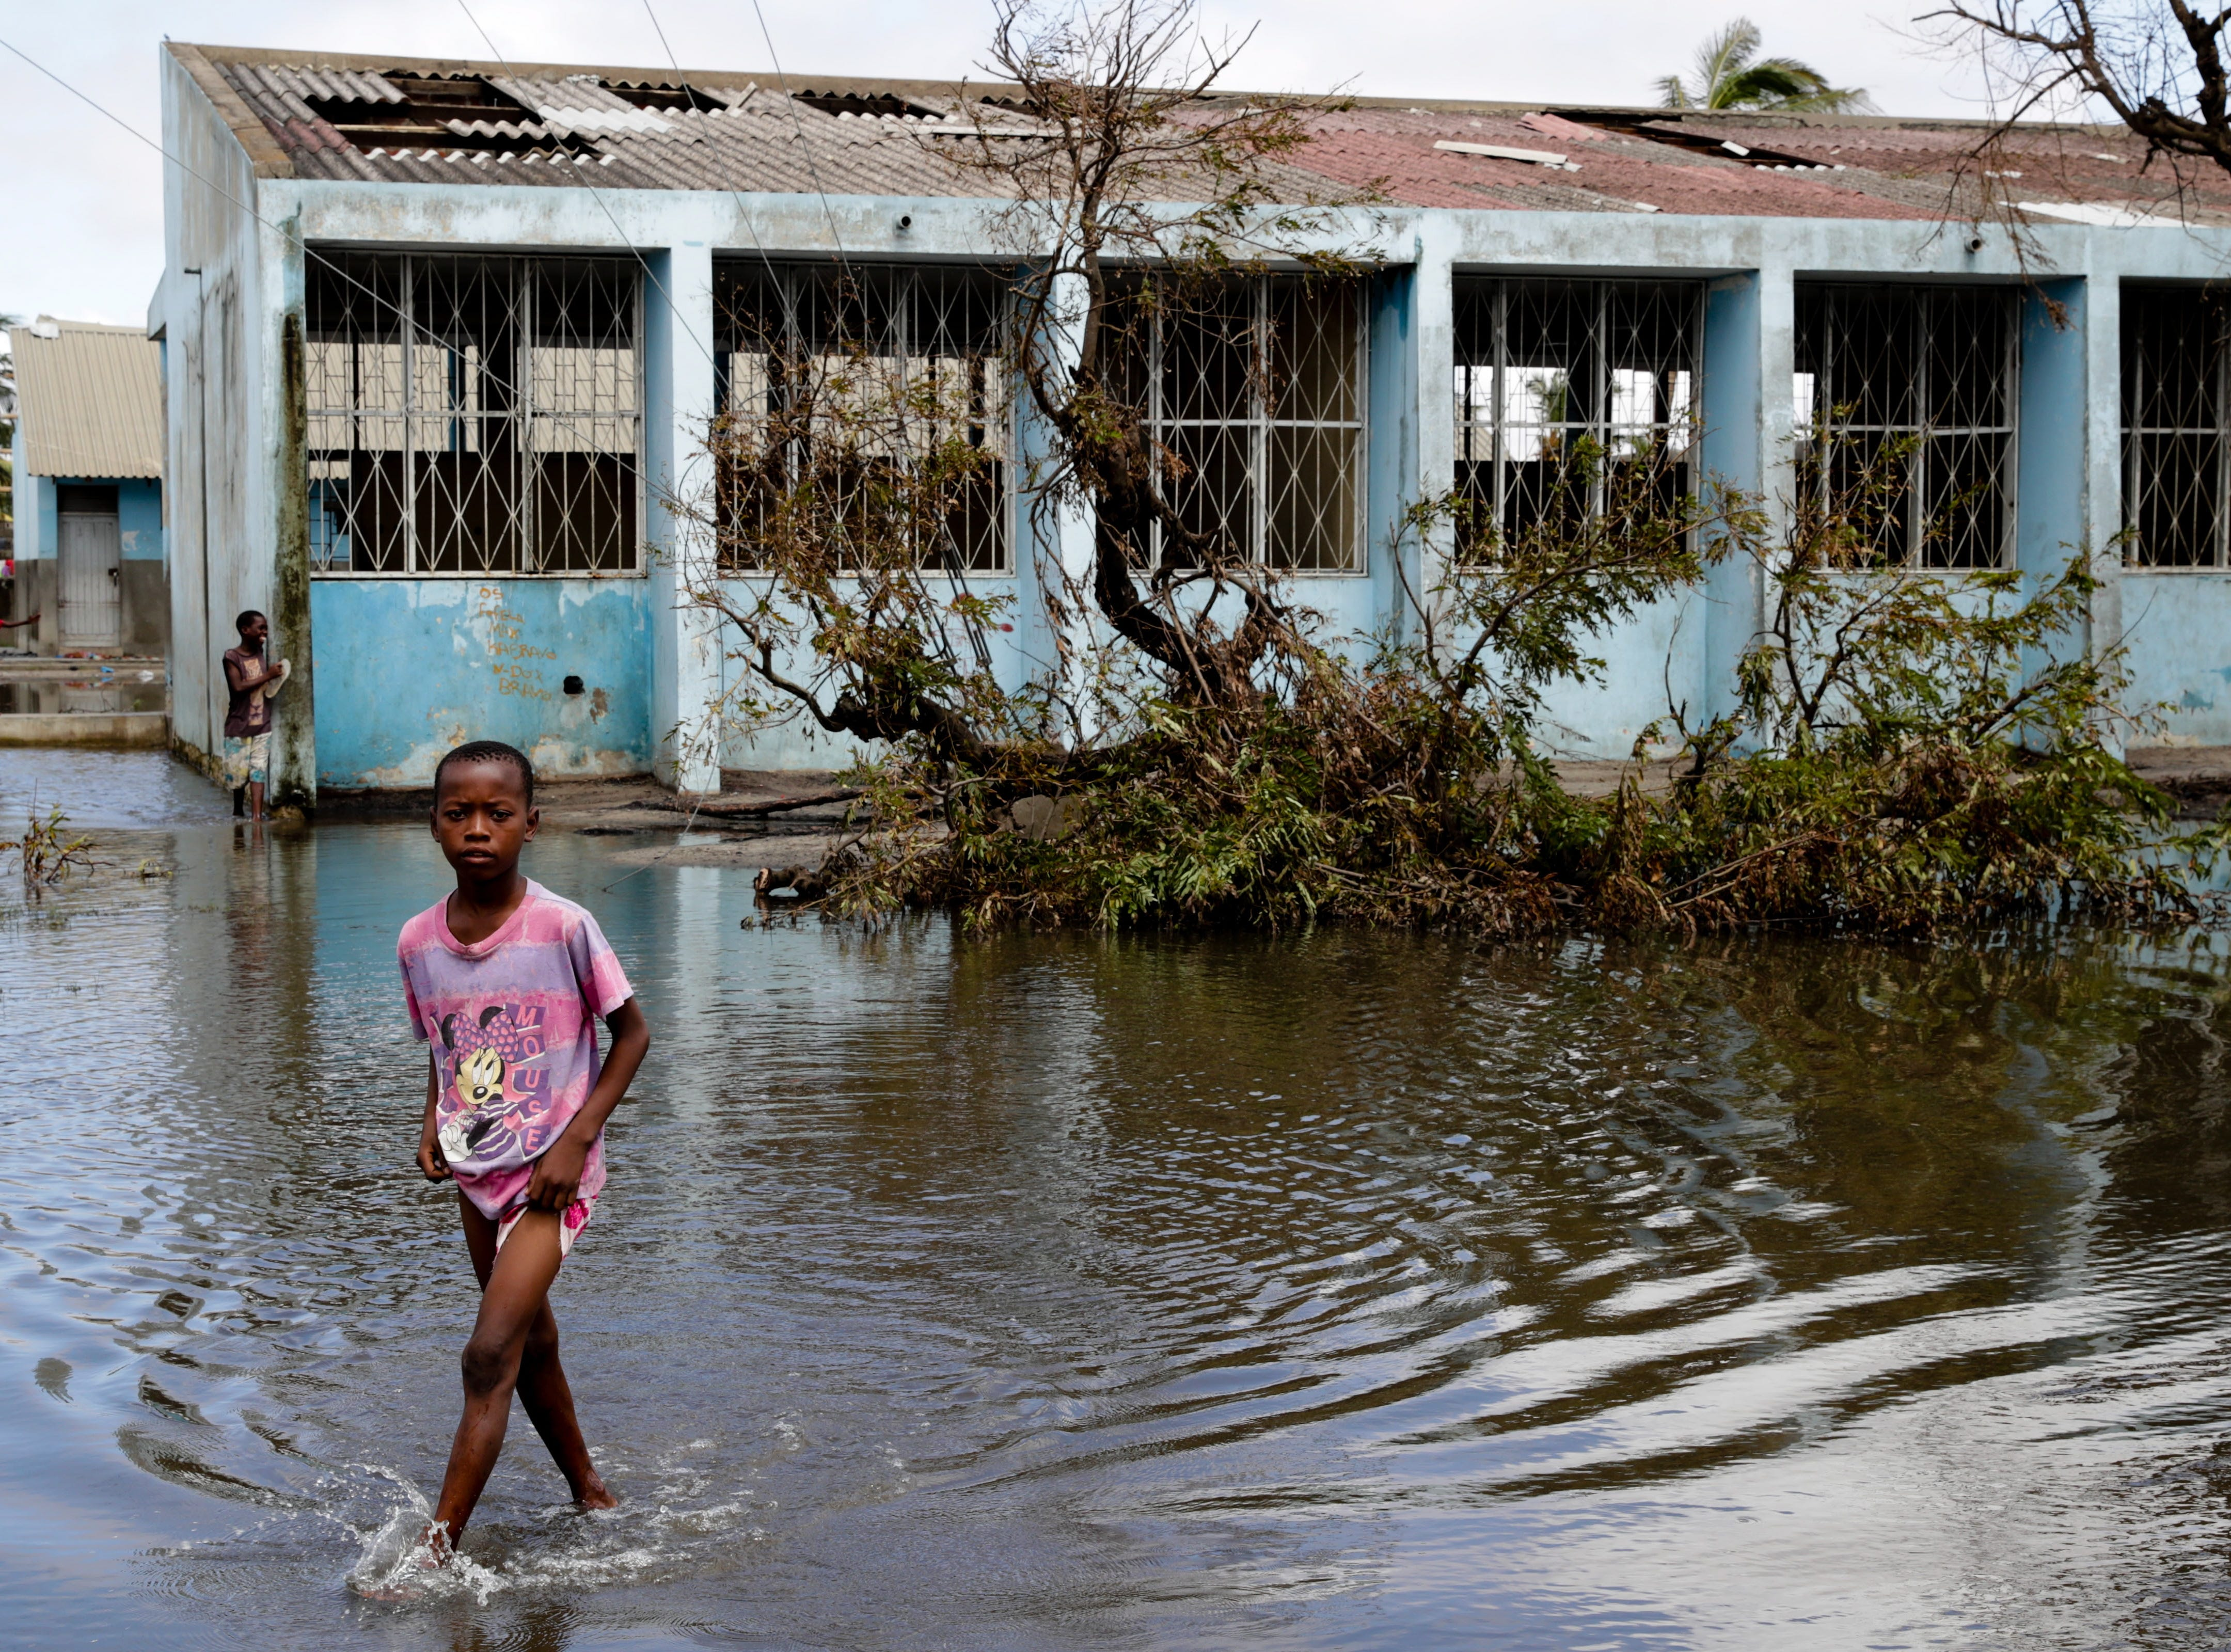 A child wades through floodwaters while waiting for drinkable water to be delivered by local authorities after a cut on the public supply of water after Cyclone Idai hit Beira City in central Mozambique.